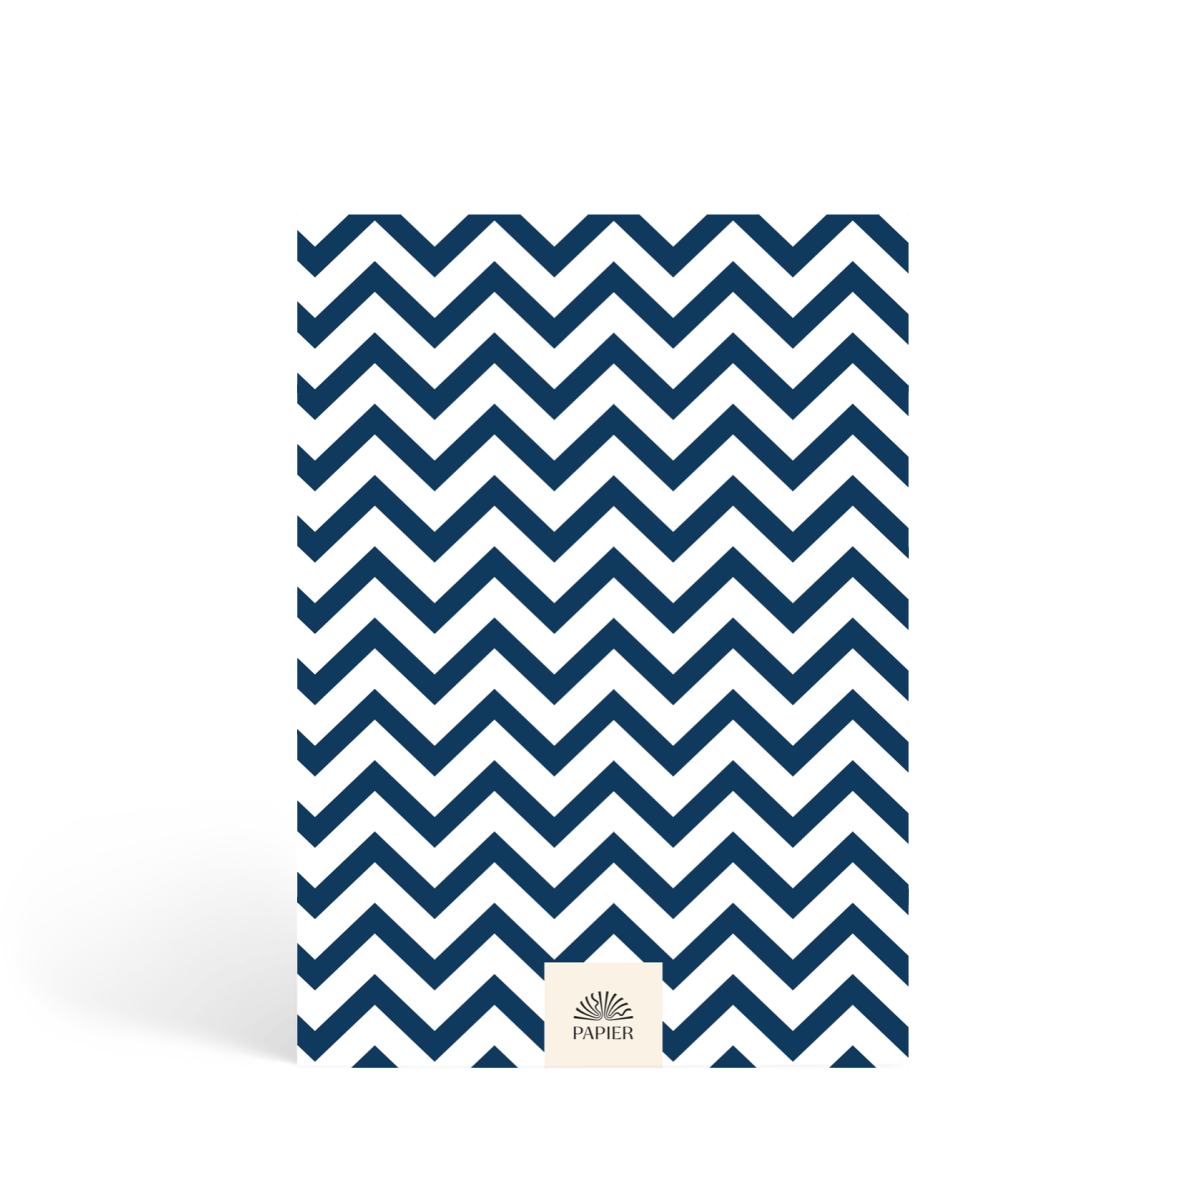 Https%3a%2f%2fwww.papier.com%2fproduct image%2f72317%2f5%2fnavy chevrons 17041 back 1555439907.png?ixlib=rb 1.1